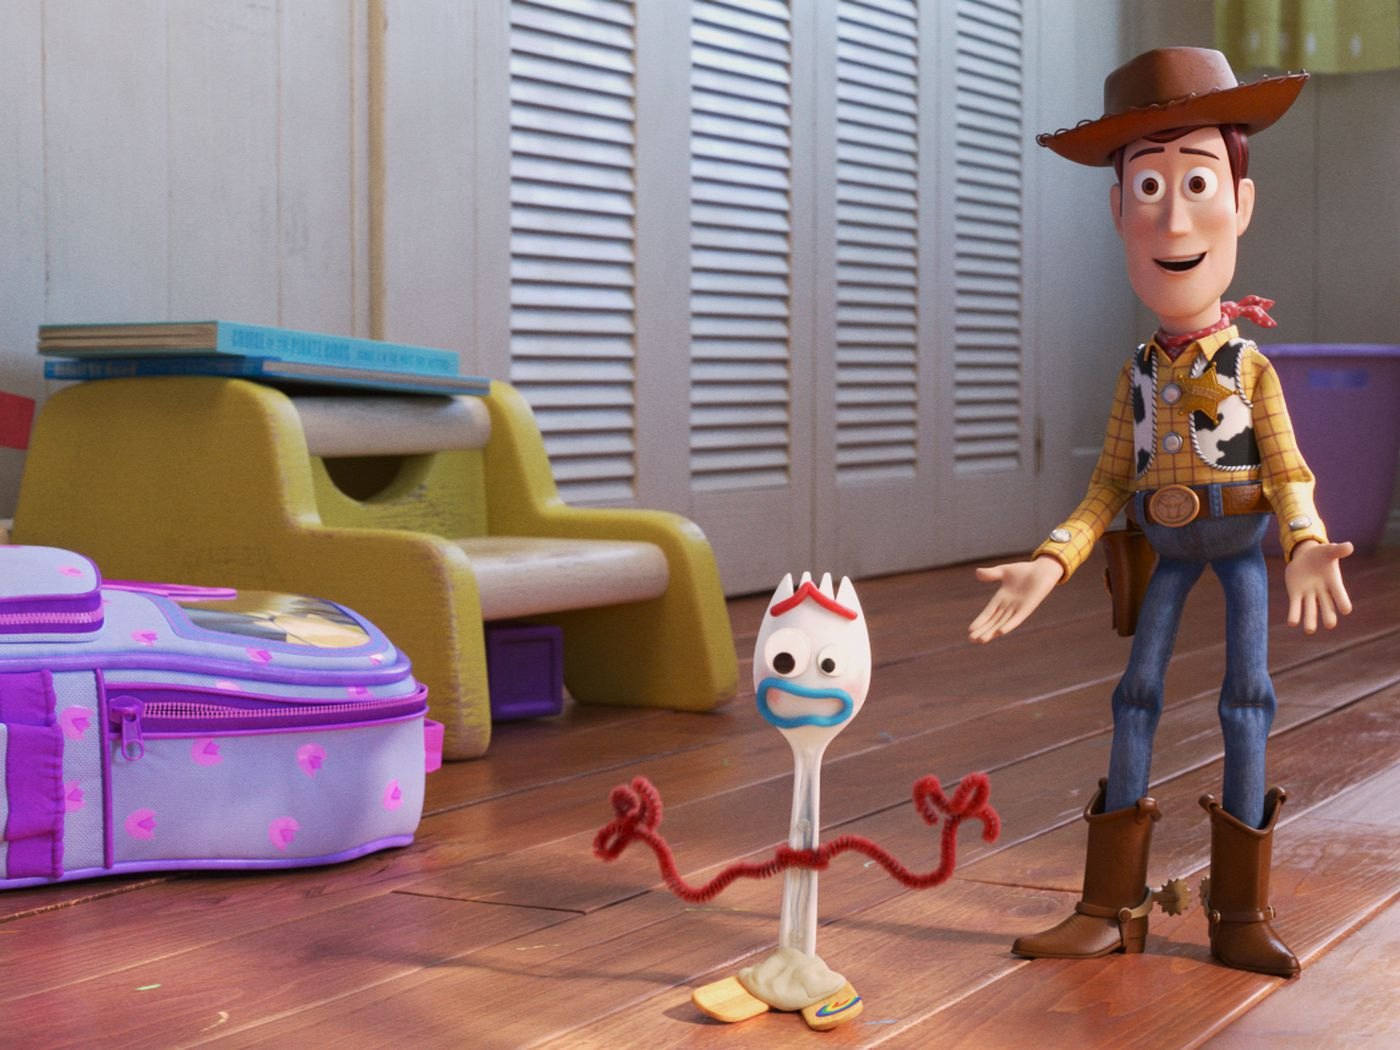 Toy Story 4 forky i am not a toy gym sack draw string bag